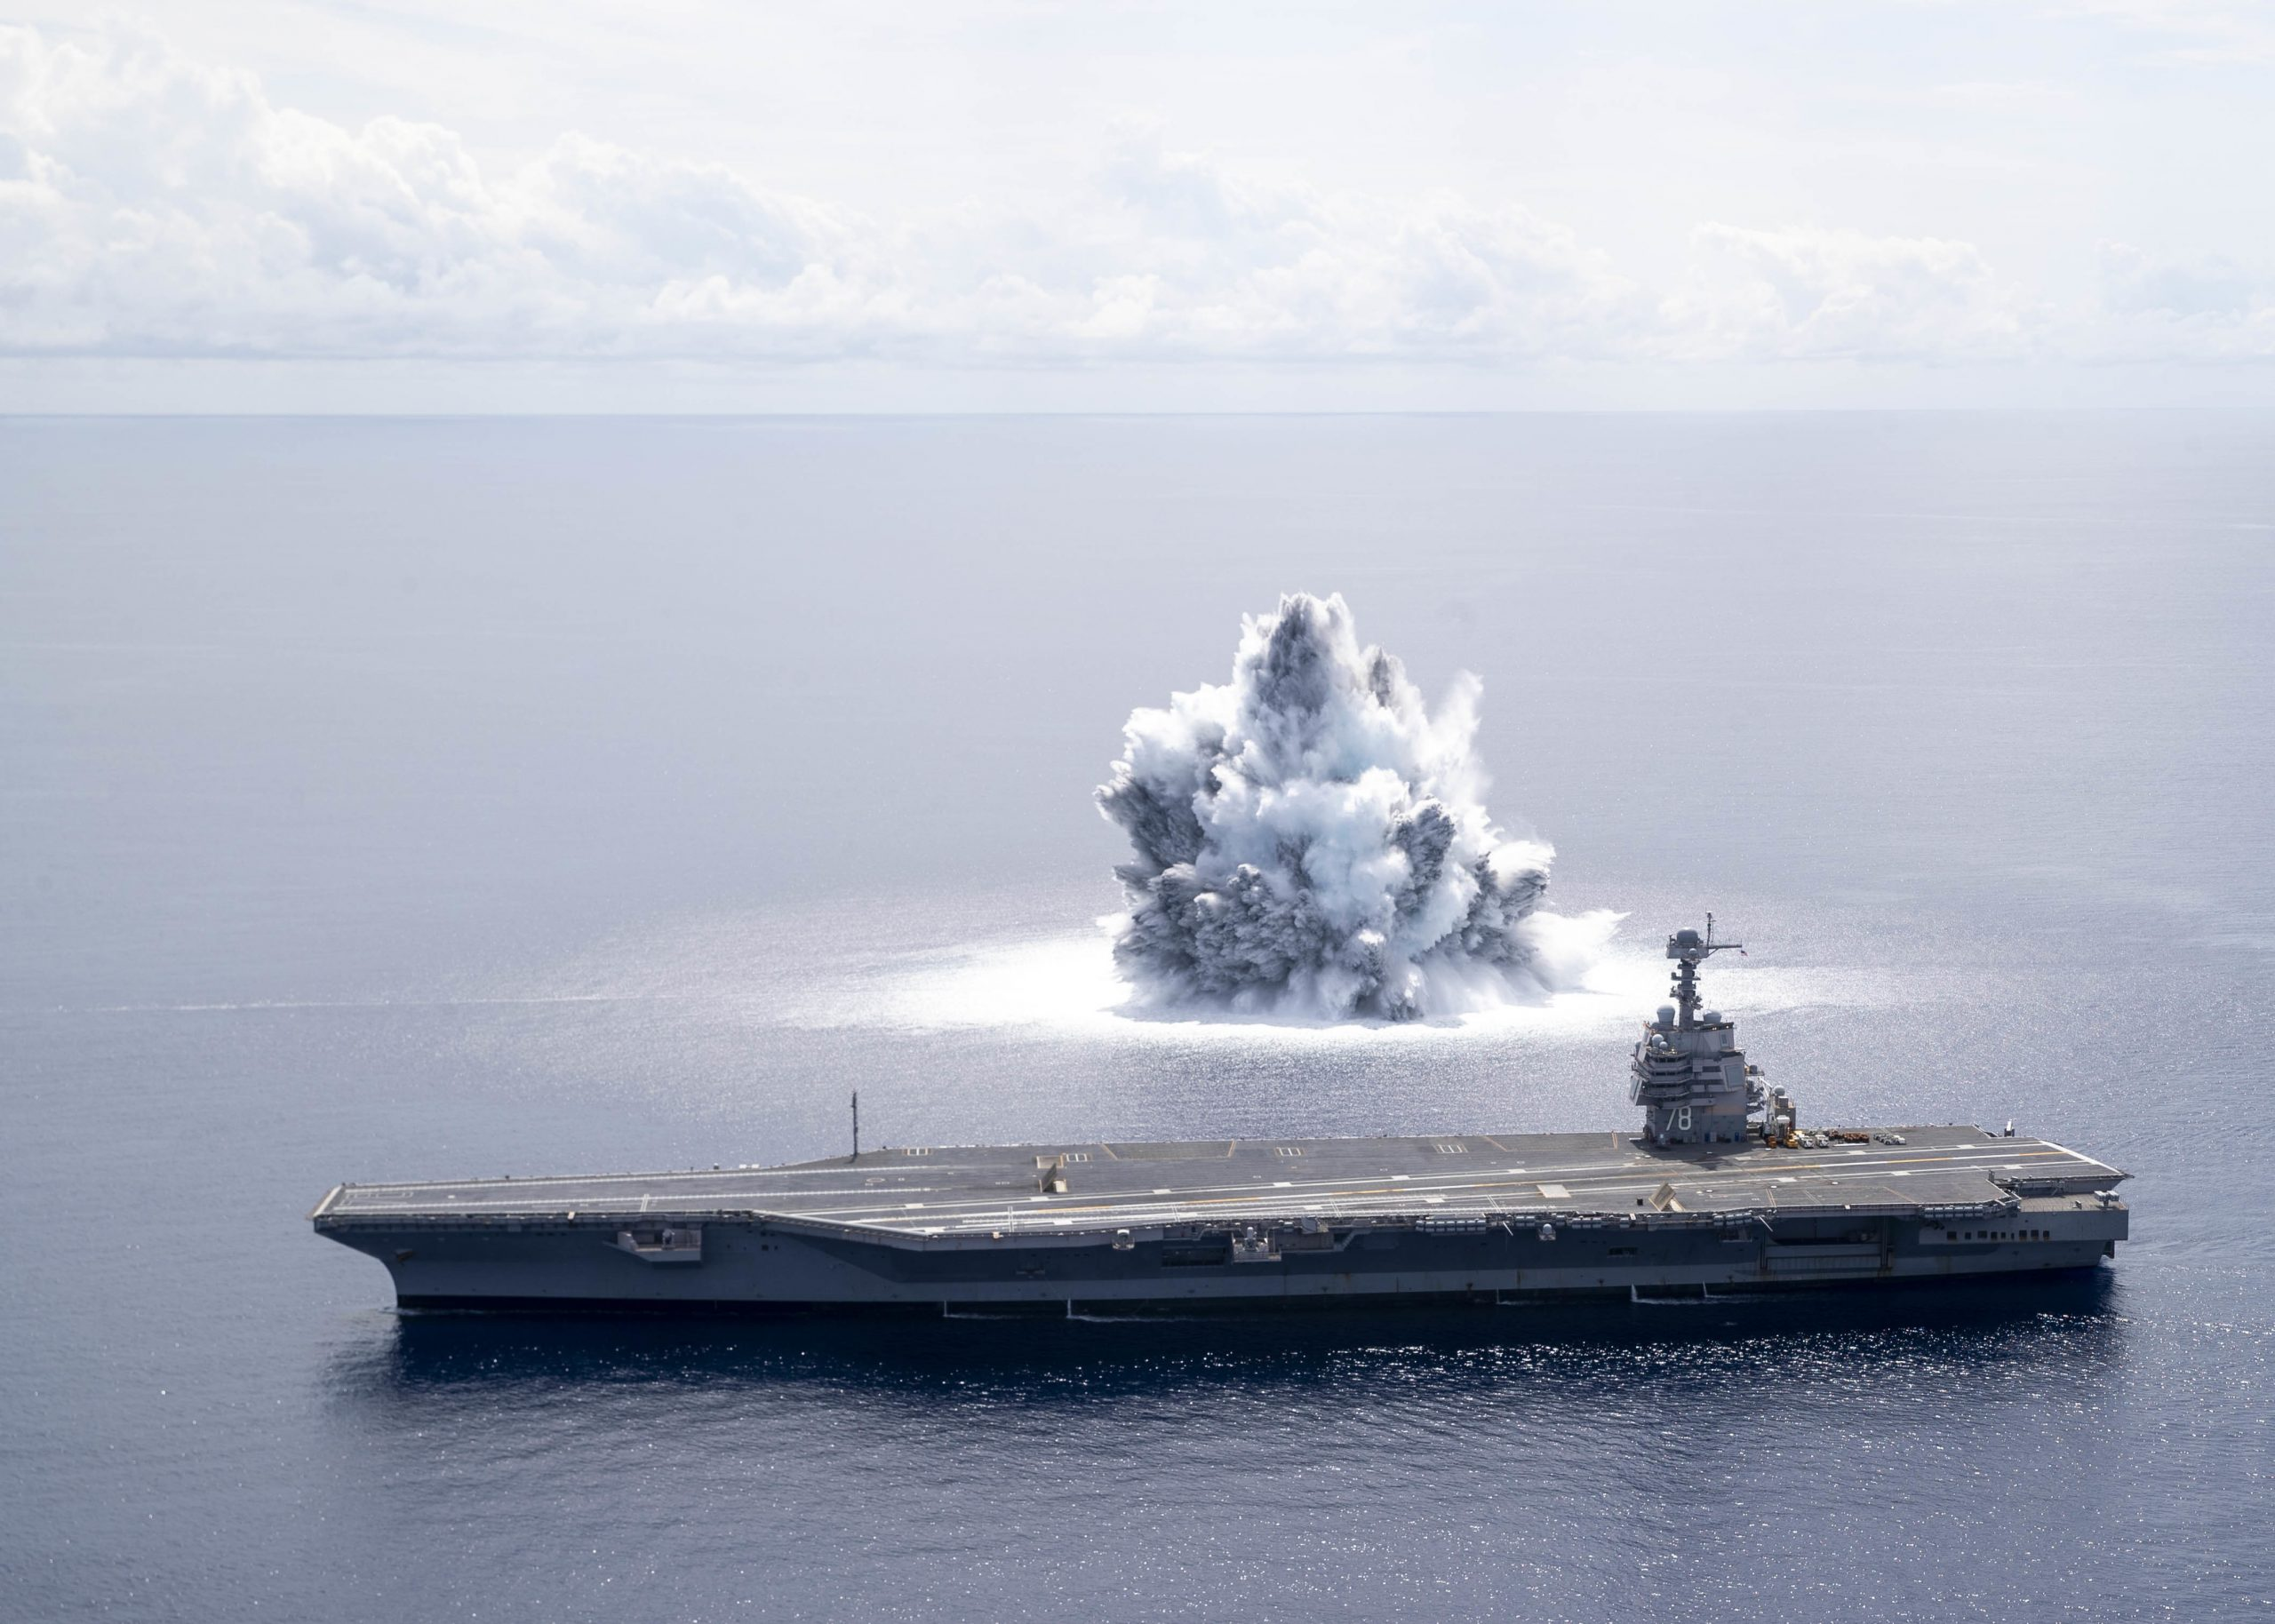 [VIDEO] US Navy aircraft carrier completes first full ship shock trials